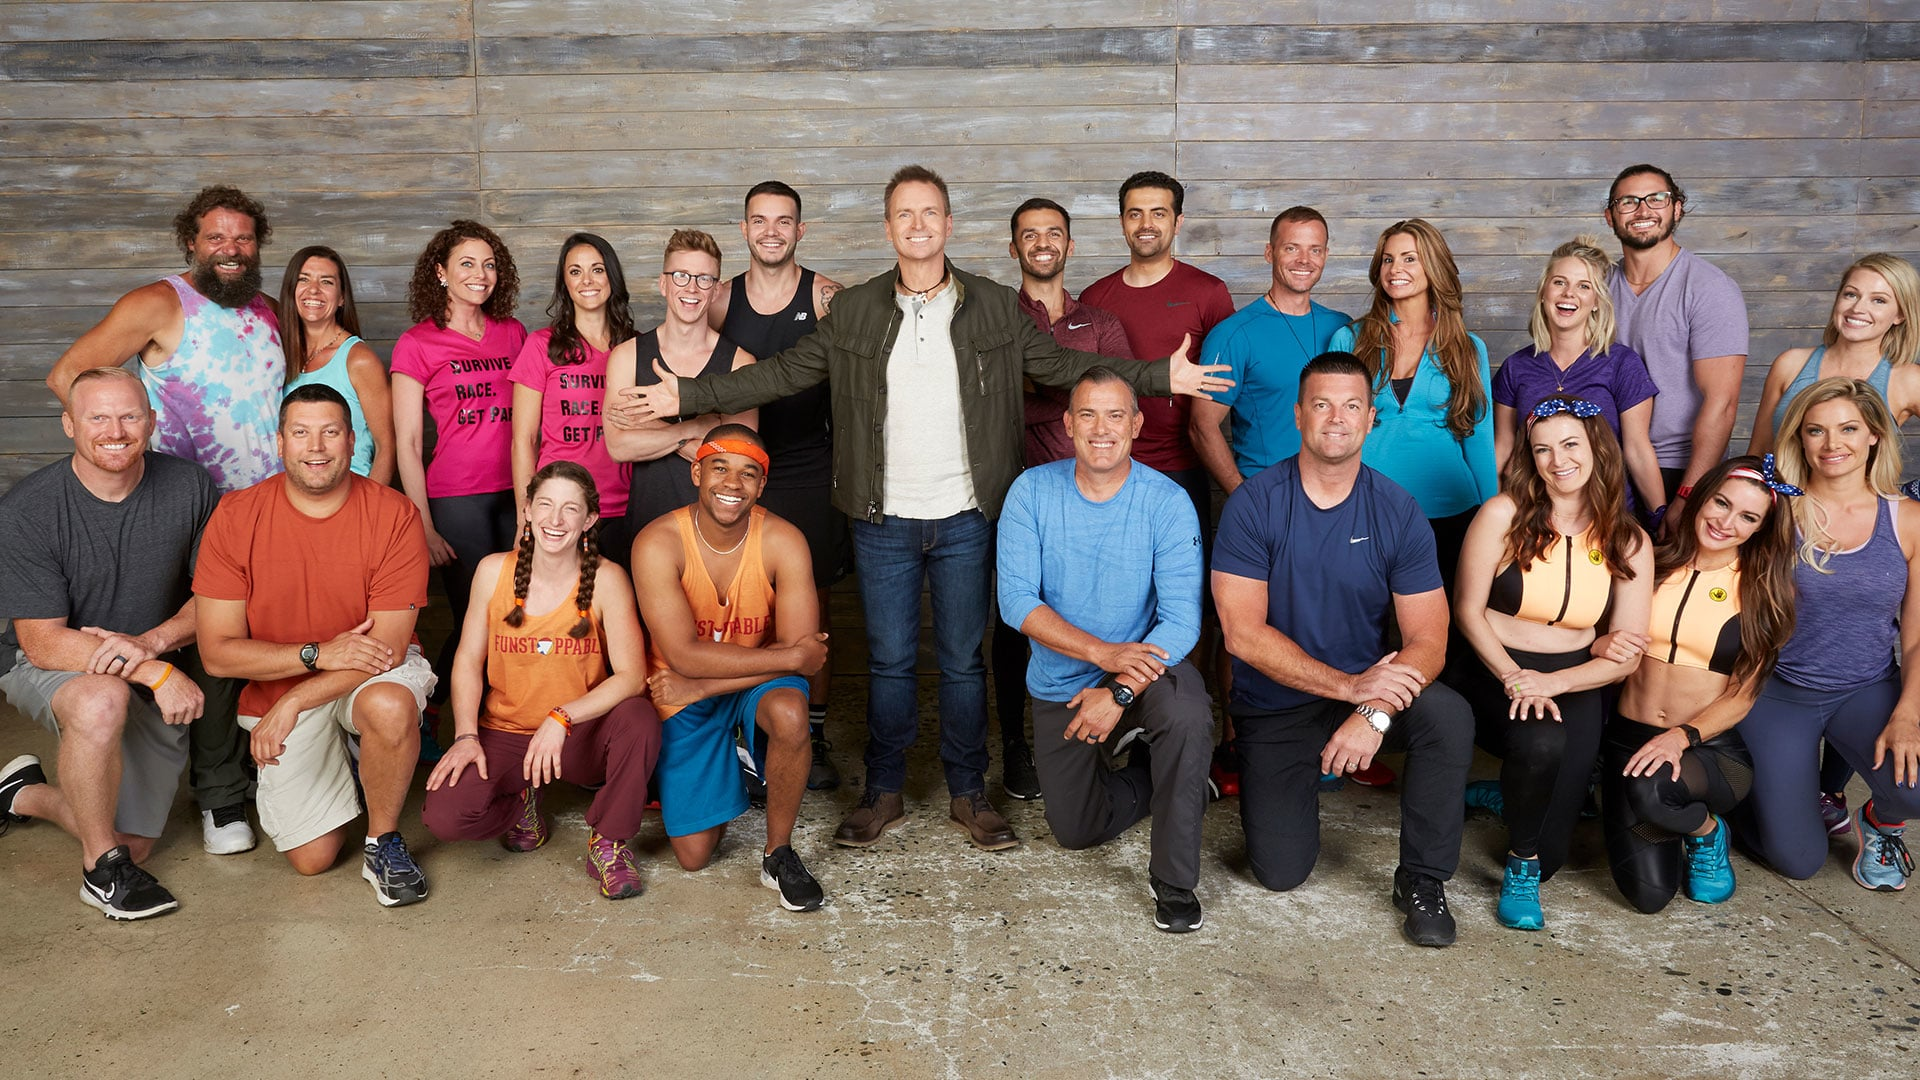 The Amazing Race Season 32 Episode 2